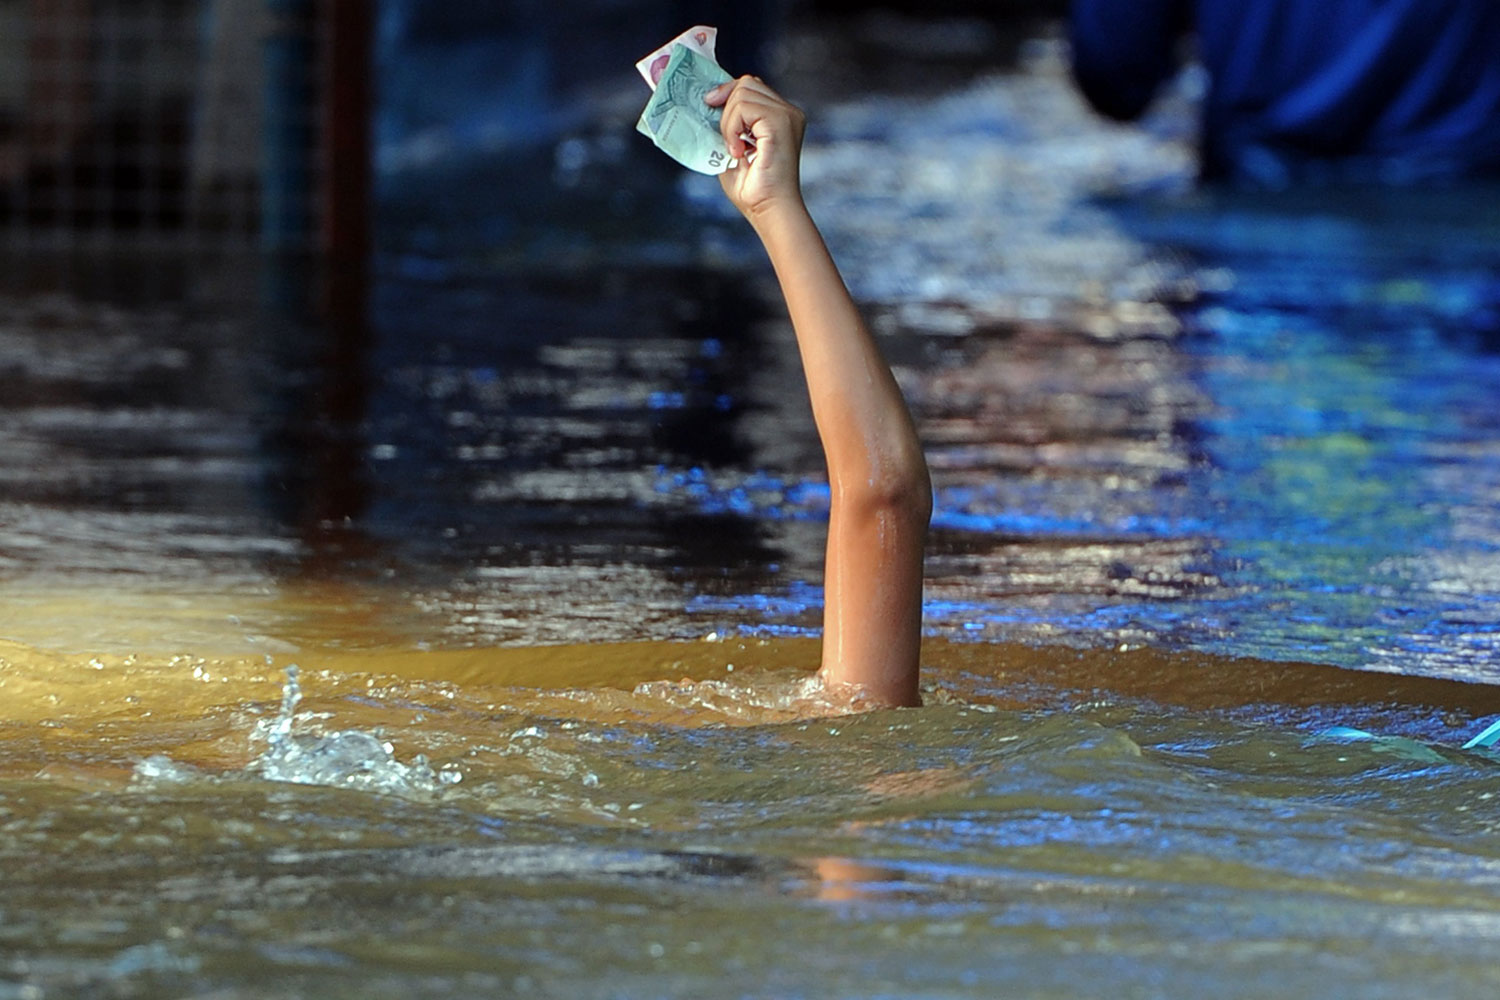 October 15, 2011. A Thai boy holds banknotes aloft to keep them dry while he swims during the flood in Nonthaburi province in suburban Bangkok. Thailand fought to hold back floodwaters flowing towards Bangkok as a spring tide hindered efforts to protect the city of 12 million people from the kingdom's worst inundation in decades.